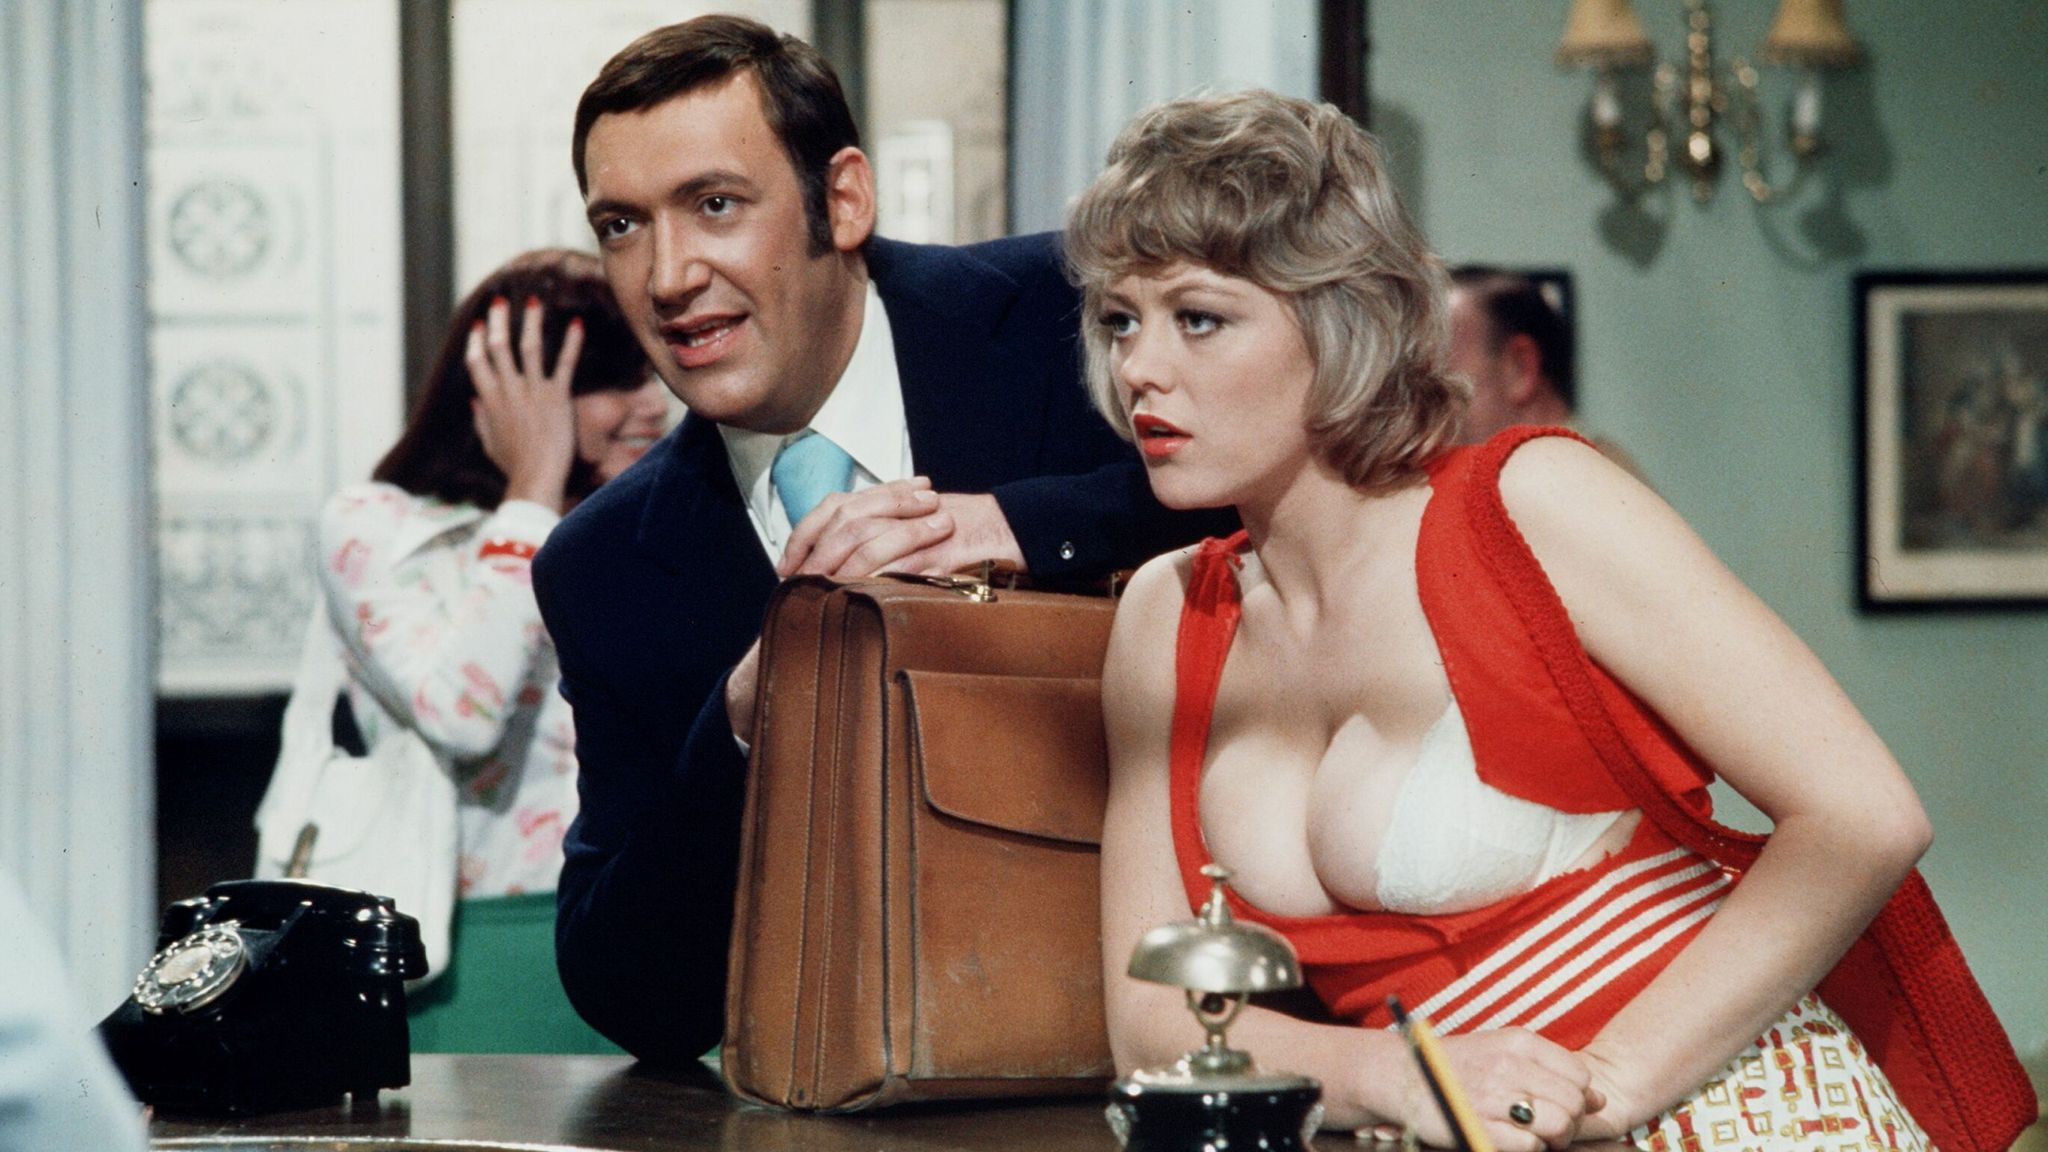 'Carry on Girls' Bernard Bresslaw and Margaret Nolan (Dawn Brakes). Pic: ITV/Shutterstock